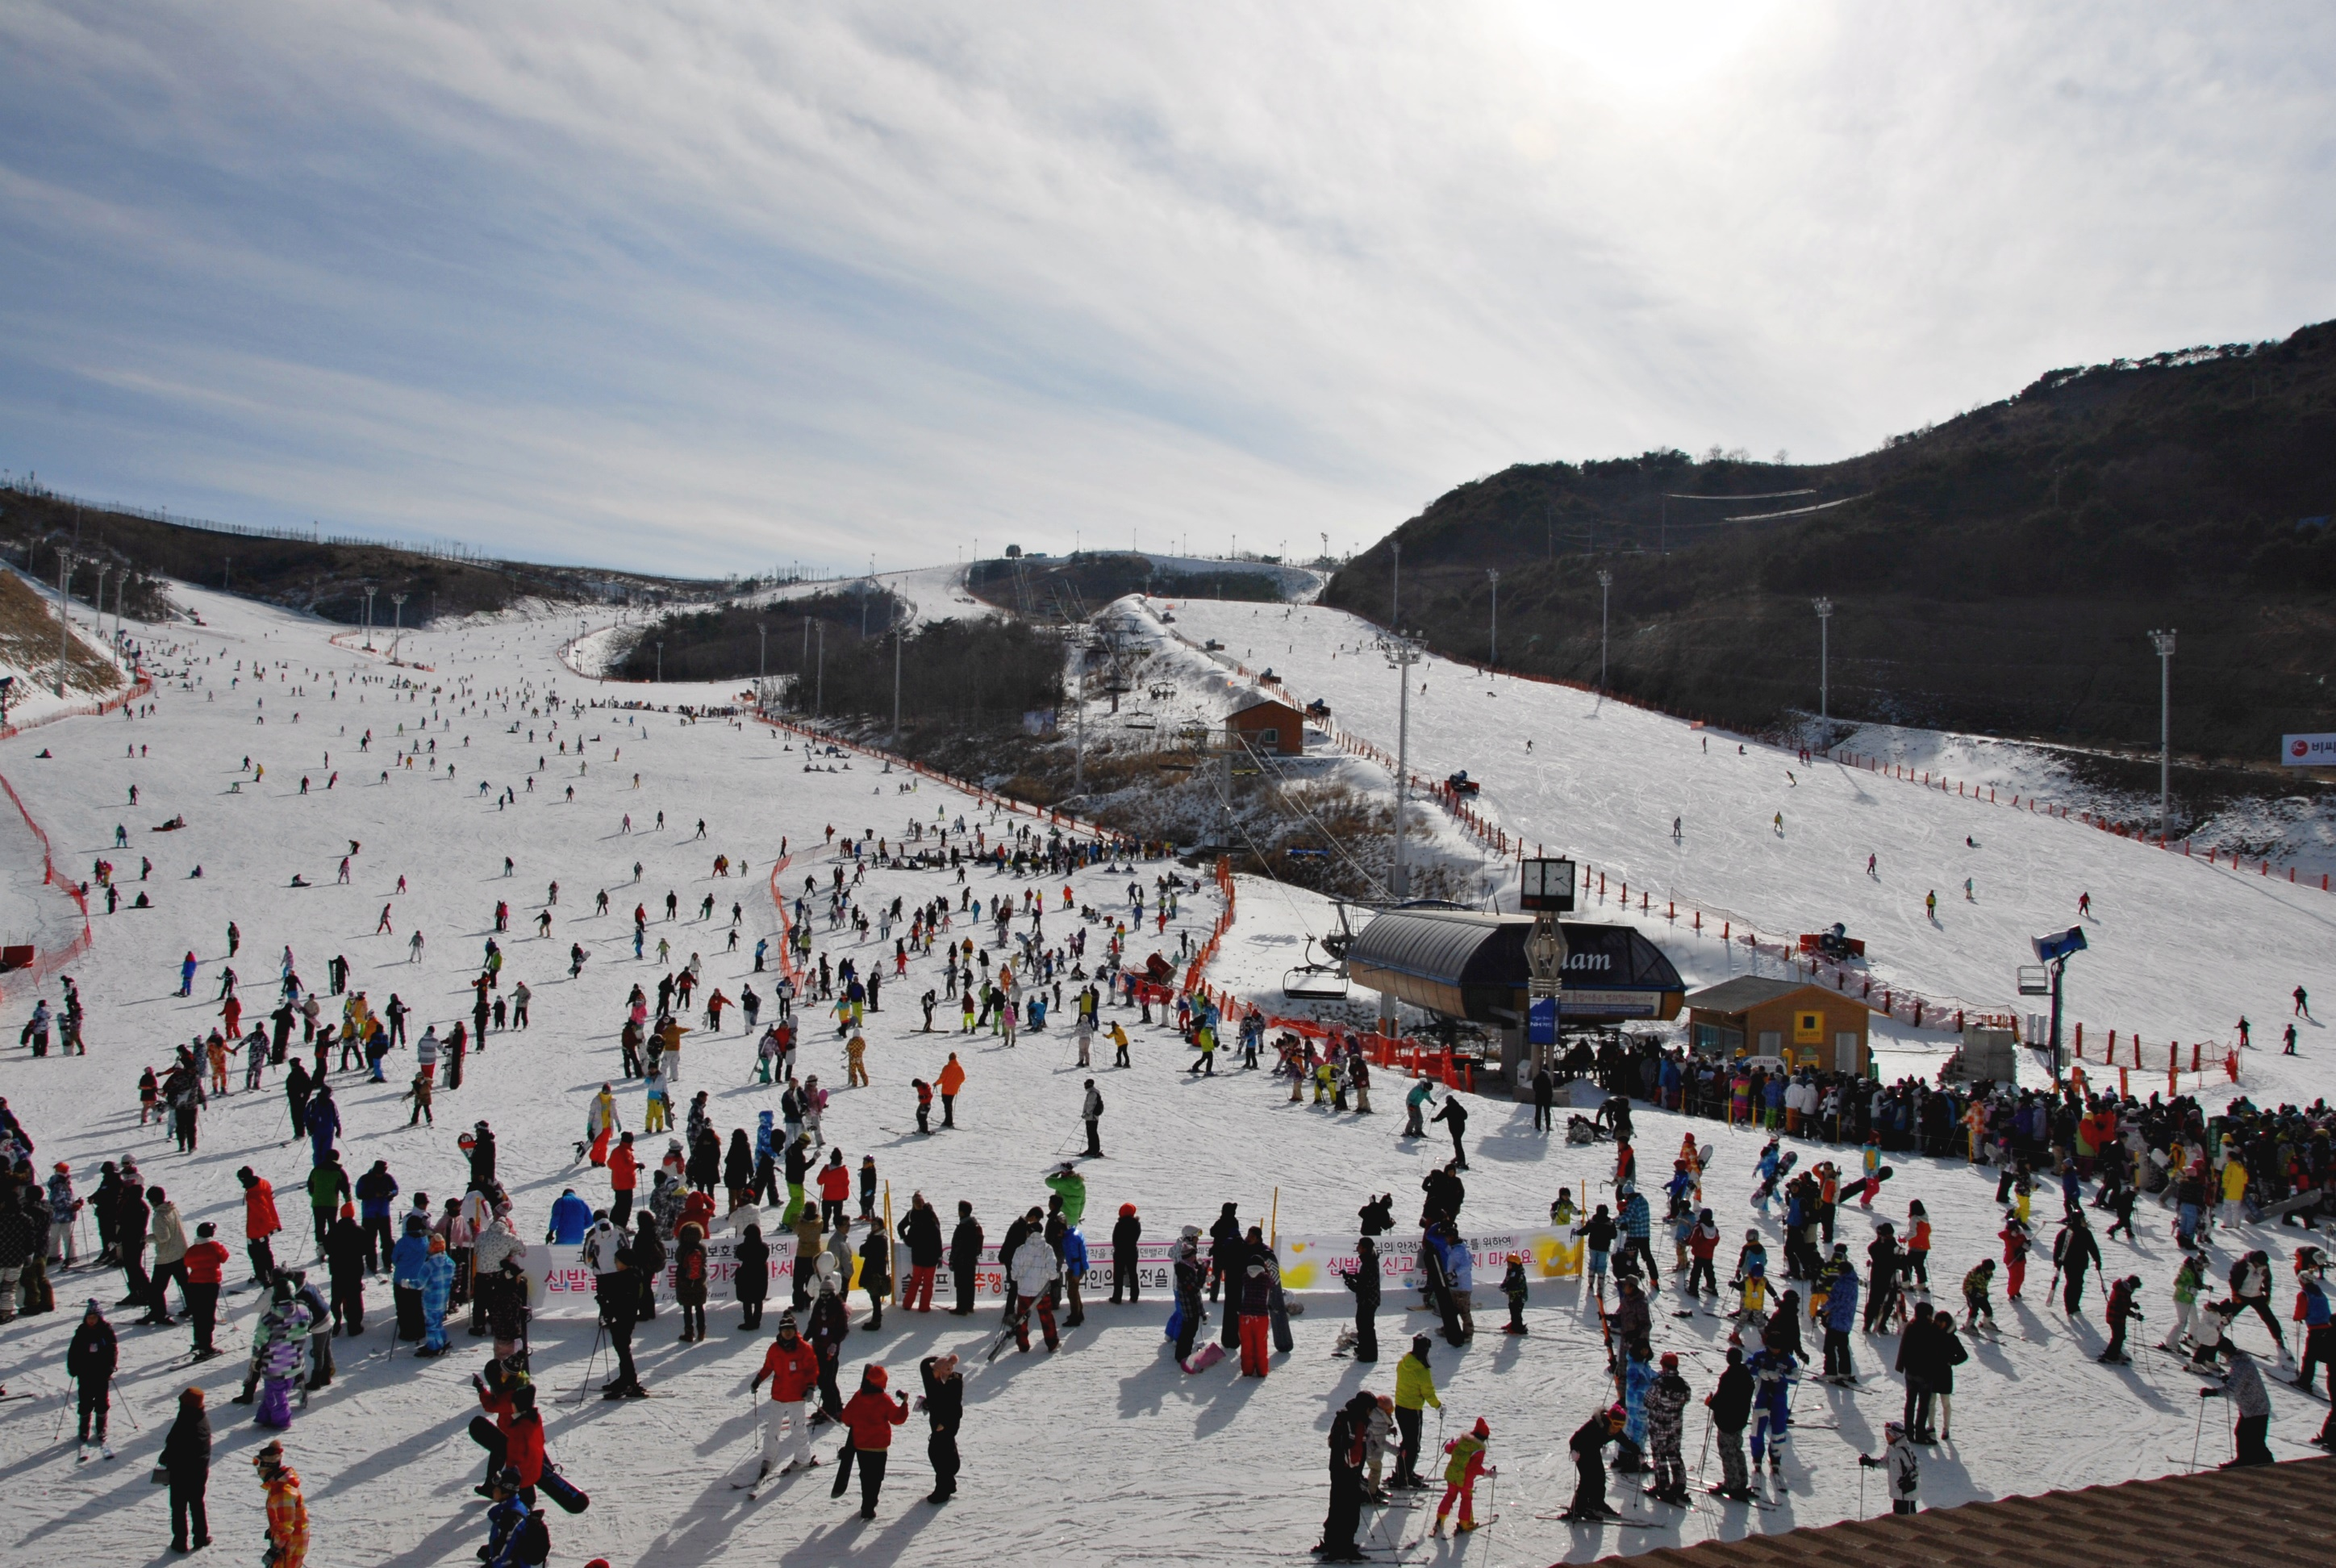 (Winter) Eden Valley Ski Resort One Day Tour - Depart from Busan